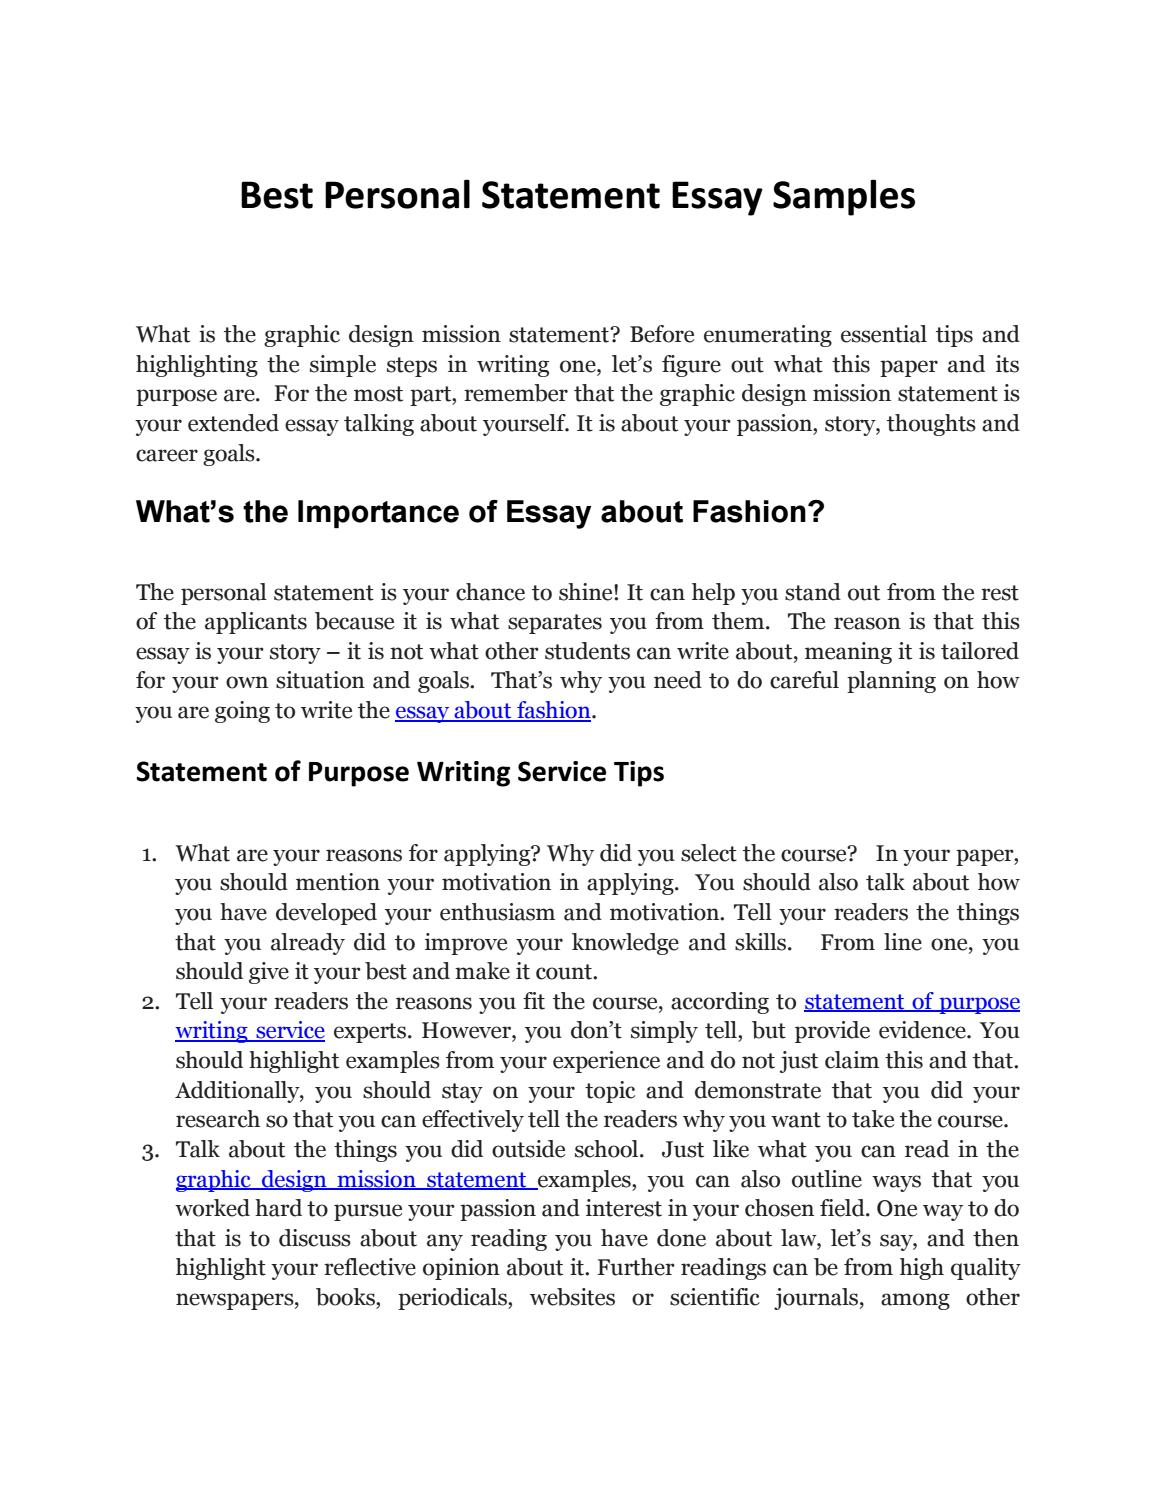 how to write an essay for fashion school 2013-1-11  your graduate school admission essay or graduate school personal statement is important get help with your graduate school application essay.